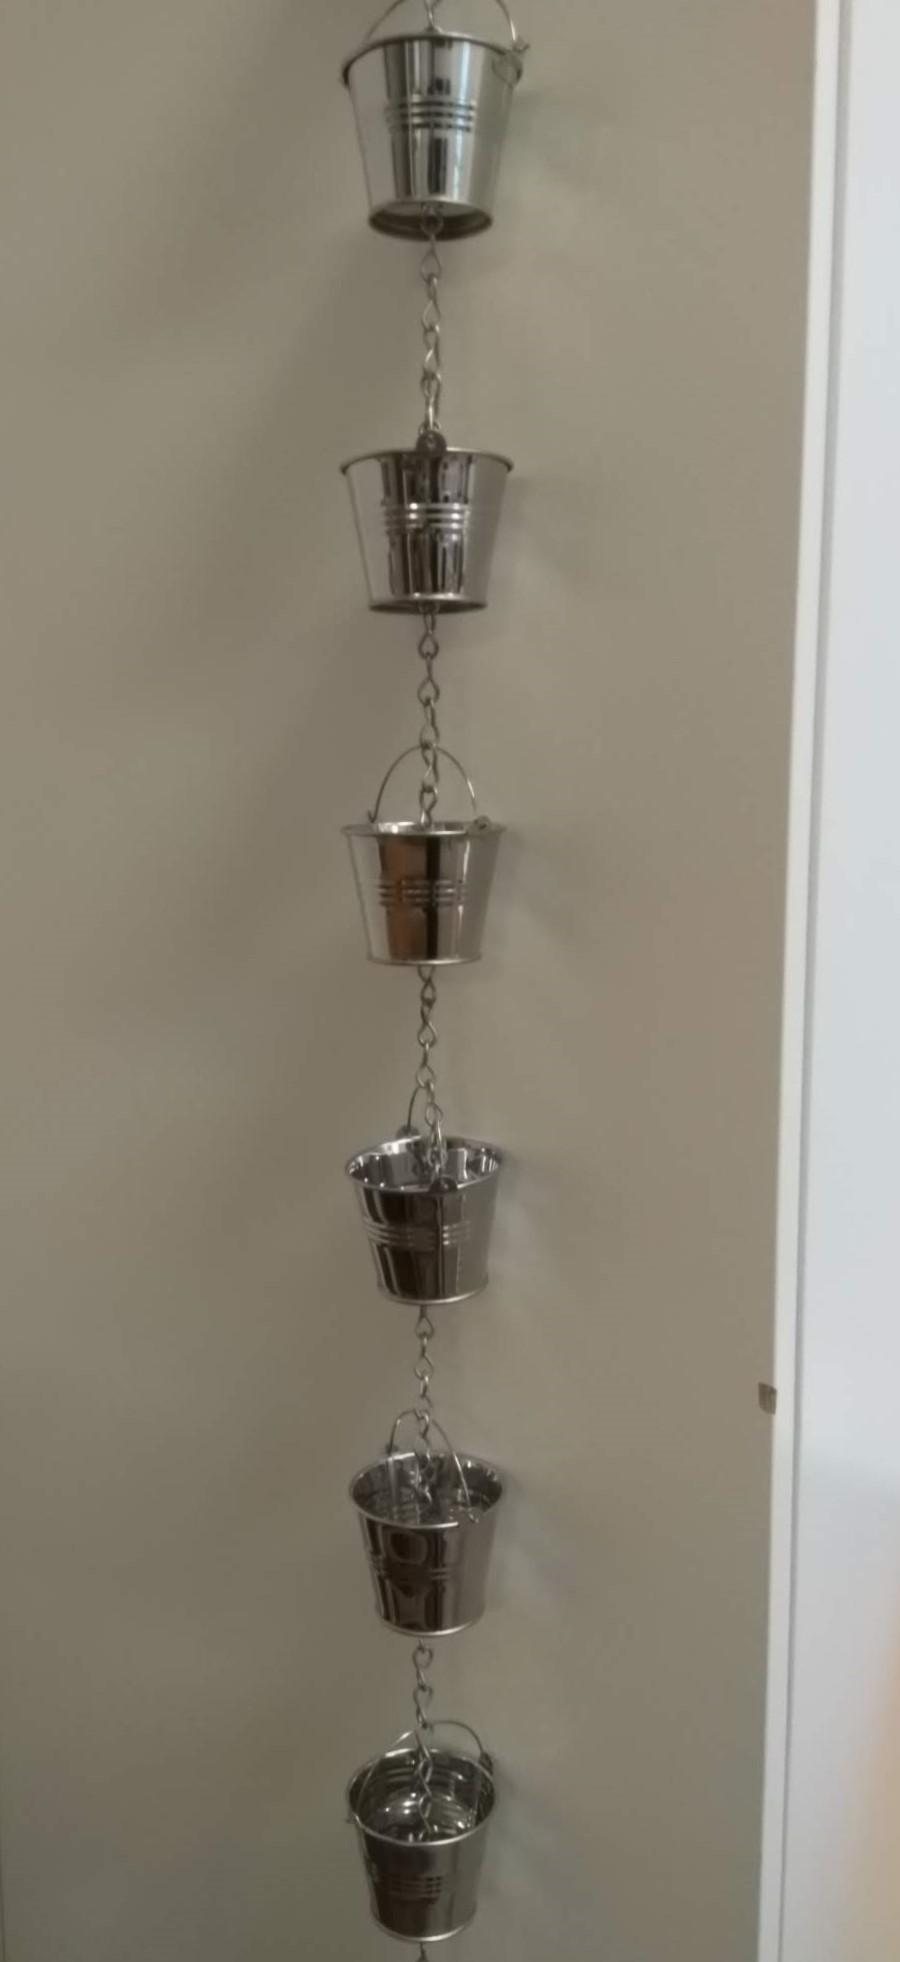 Hanging the Buckets on the Chain